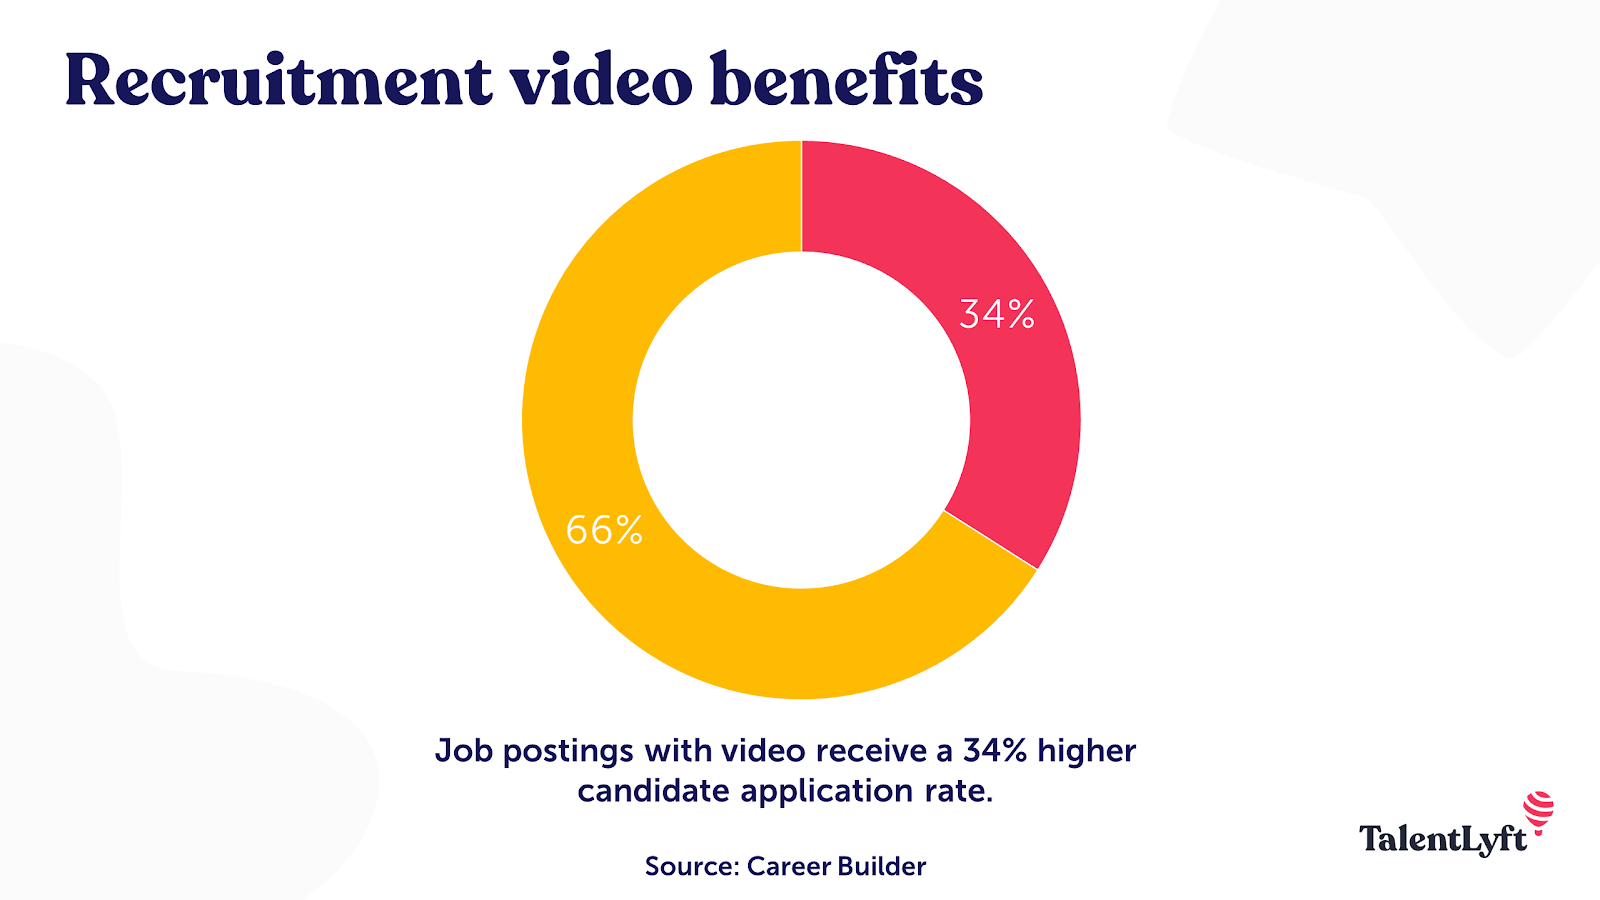 Why should you use video in recruitment?